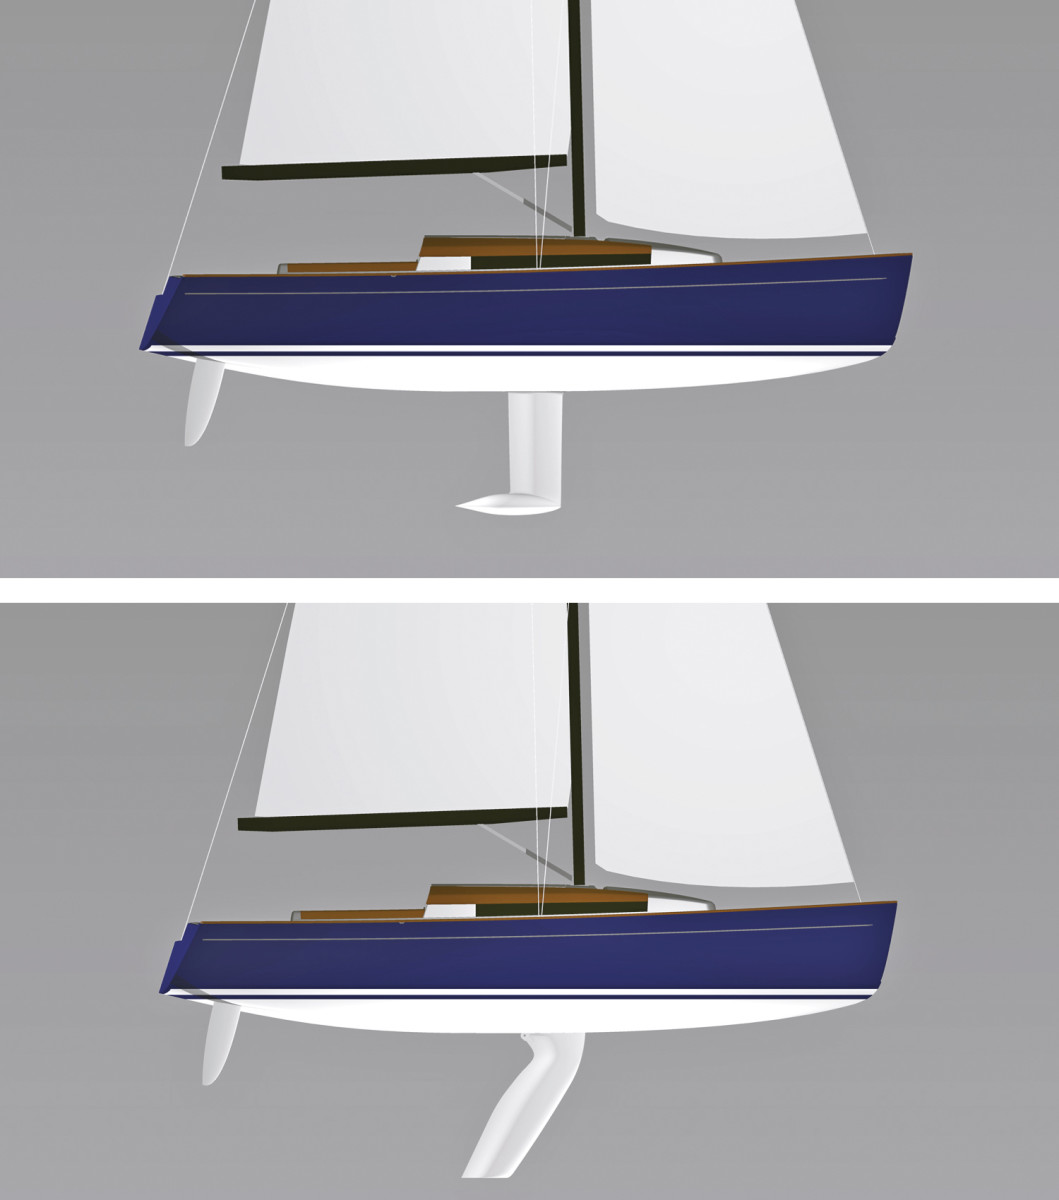 Fix Keel (top); Swing Keel (bottom)